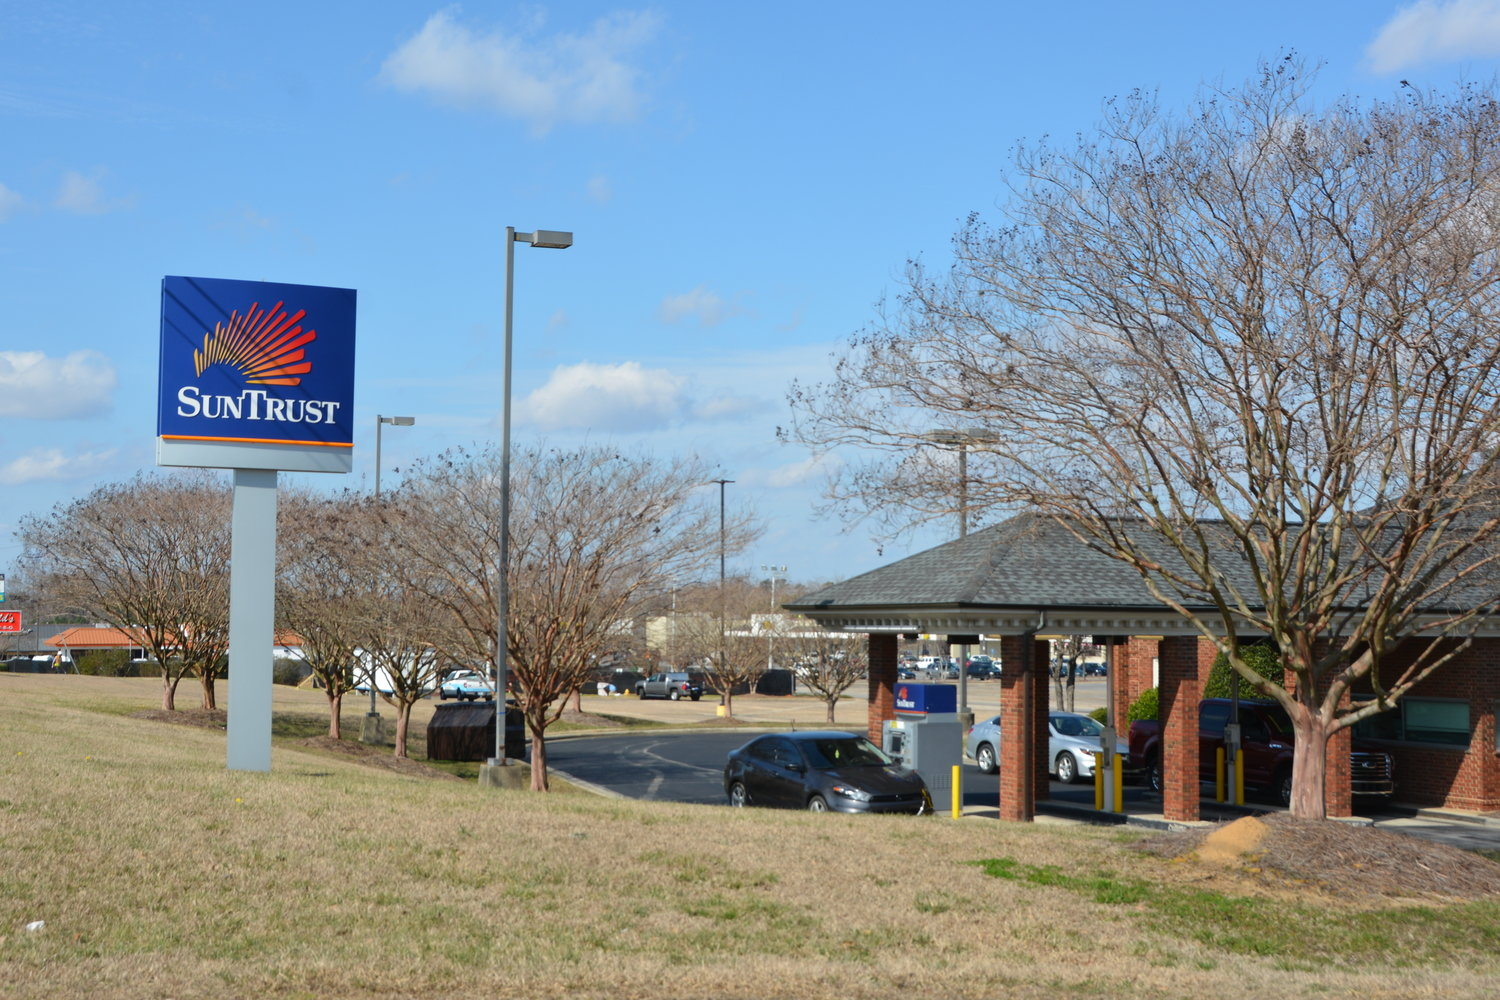 SunTrust Bank branches, like this one in Erwin, could be affected by a merger with BB@T which was announced Thursday. The two banks will operate under a different name that has not been released. It is not known how the merger will affect local branches of either bank.